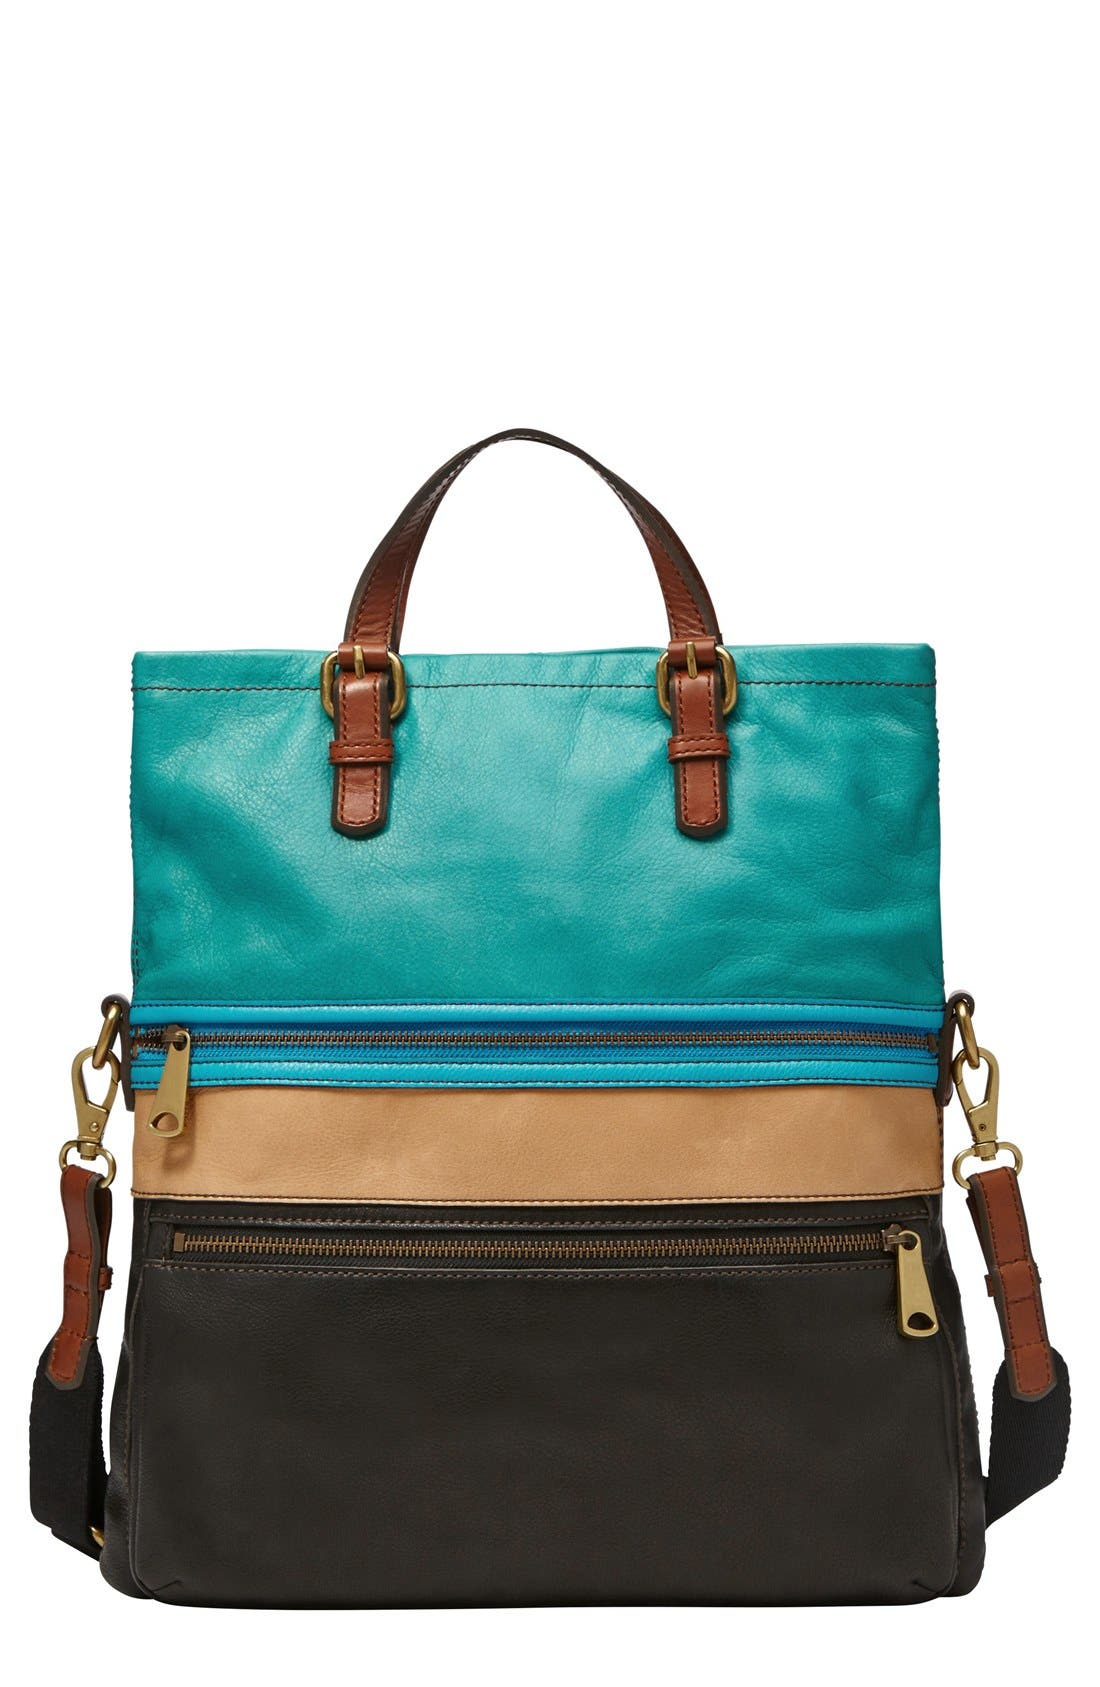 Main Image - Fossil 'Explorer' Patchwork Convertible Tote